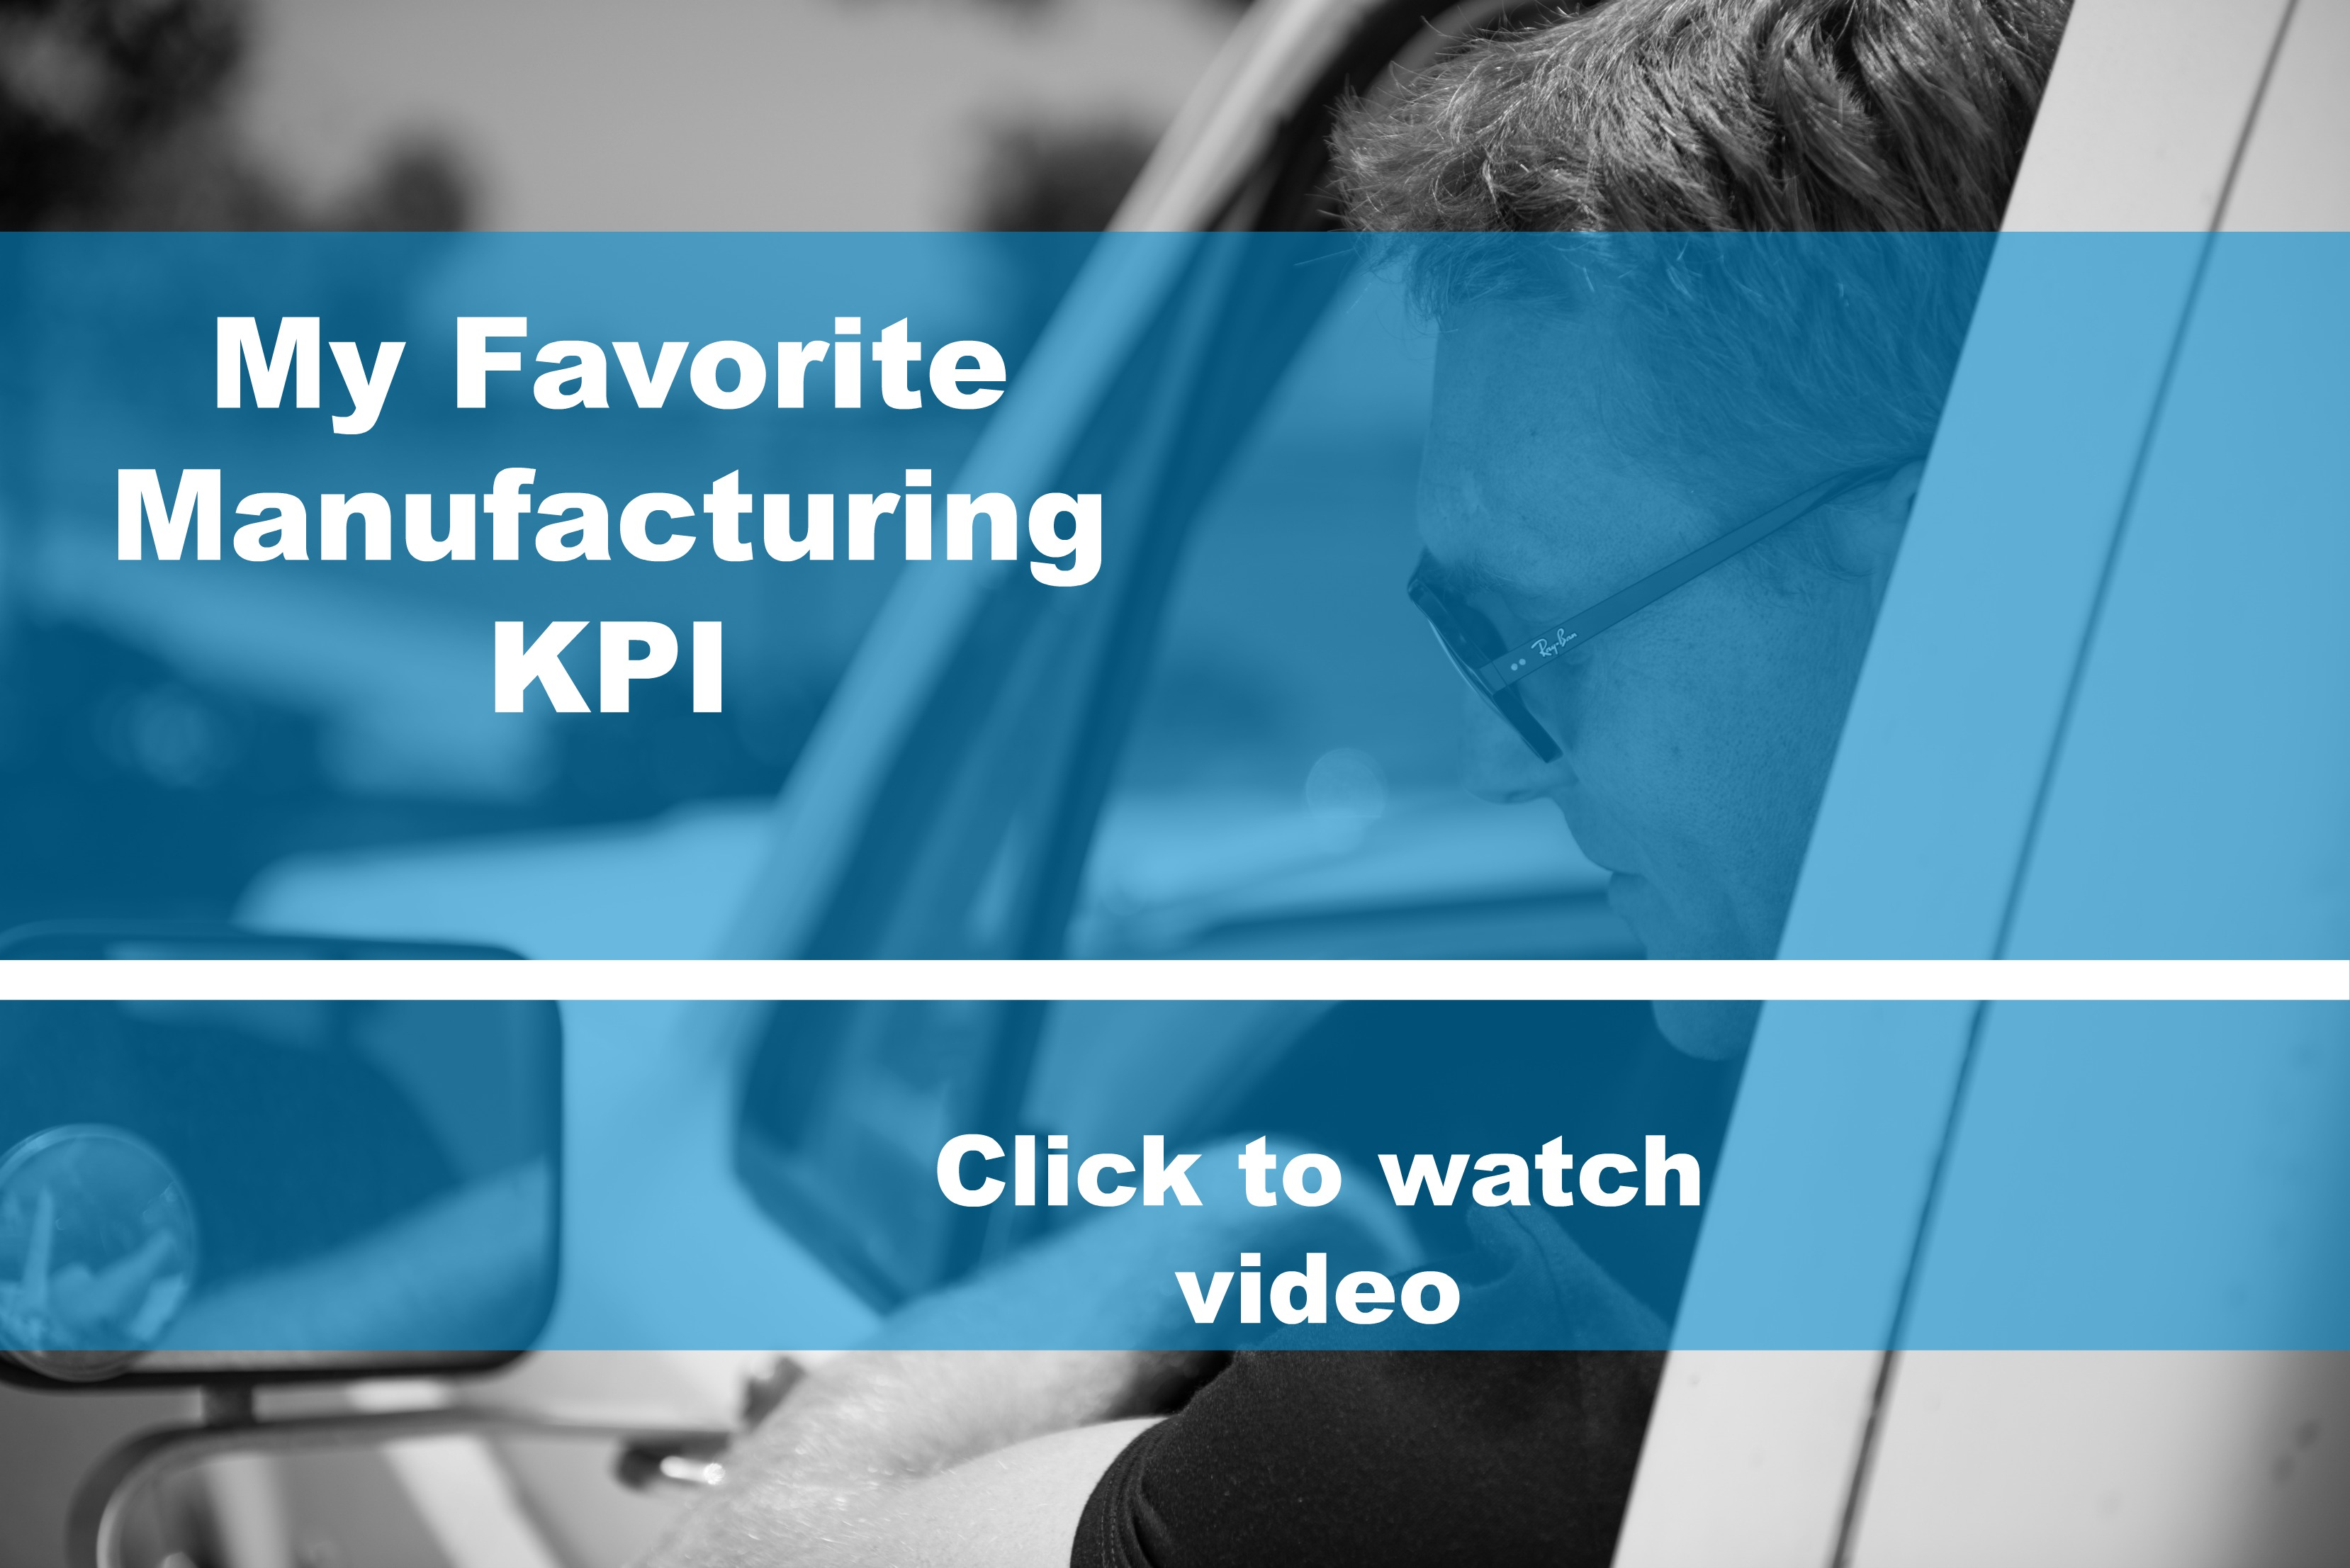 My Favorite Manufacturing KPI